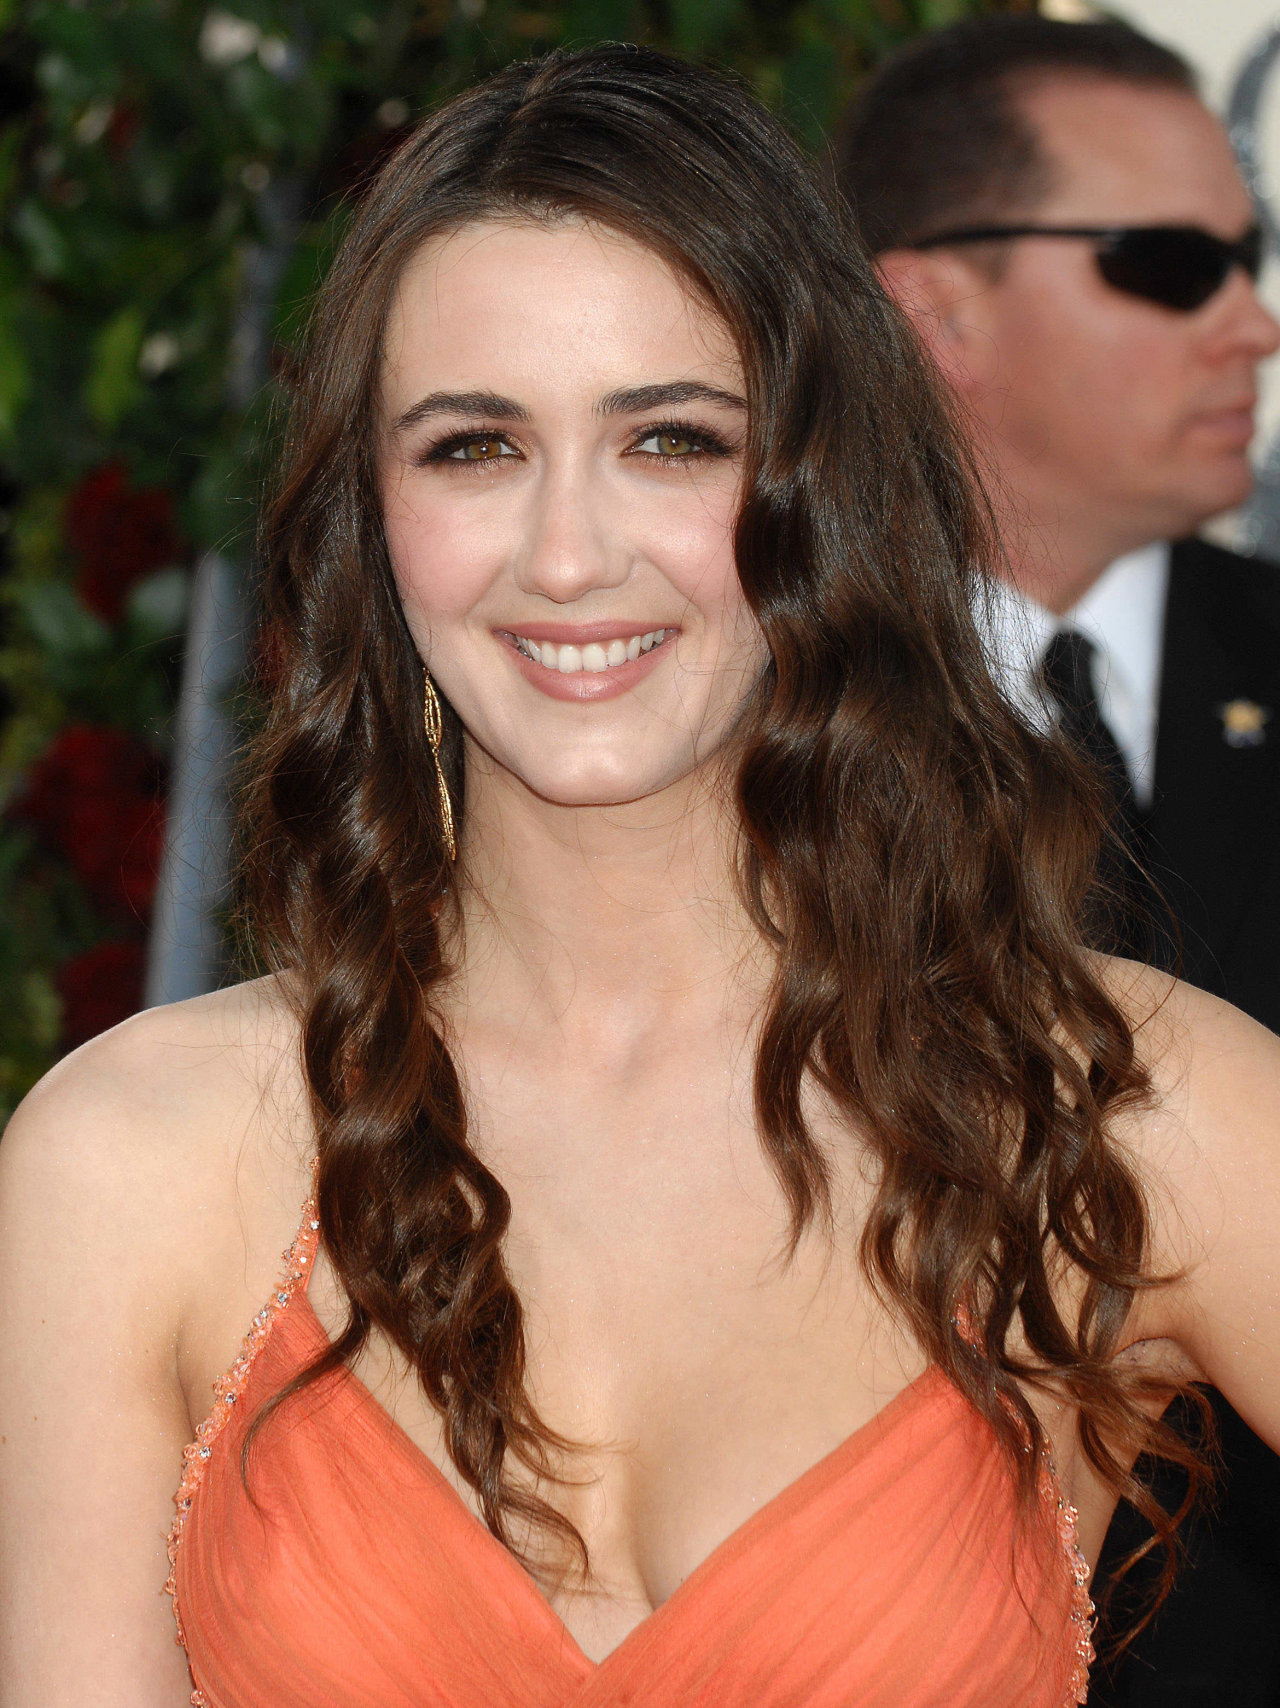 Madeline Zima leaked wallpapers